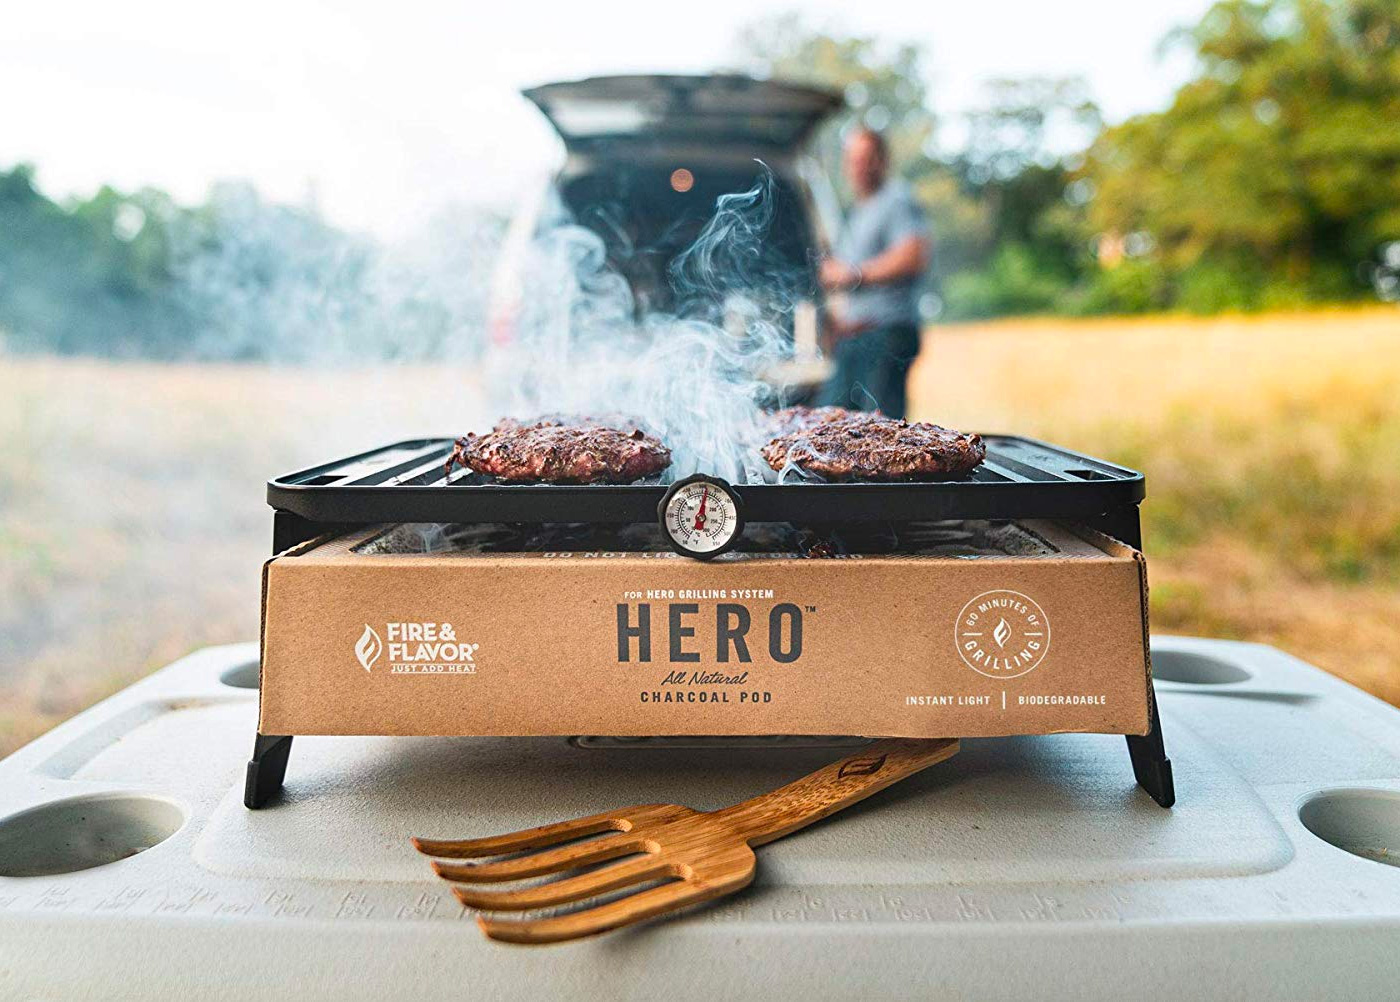 This Hero is a Portable Charcoal Grill at werd.com